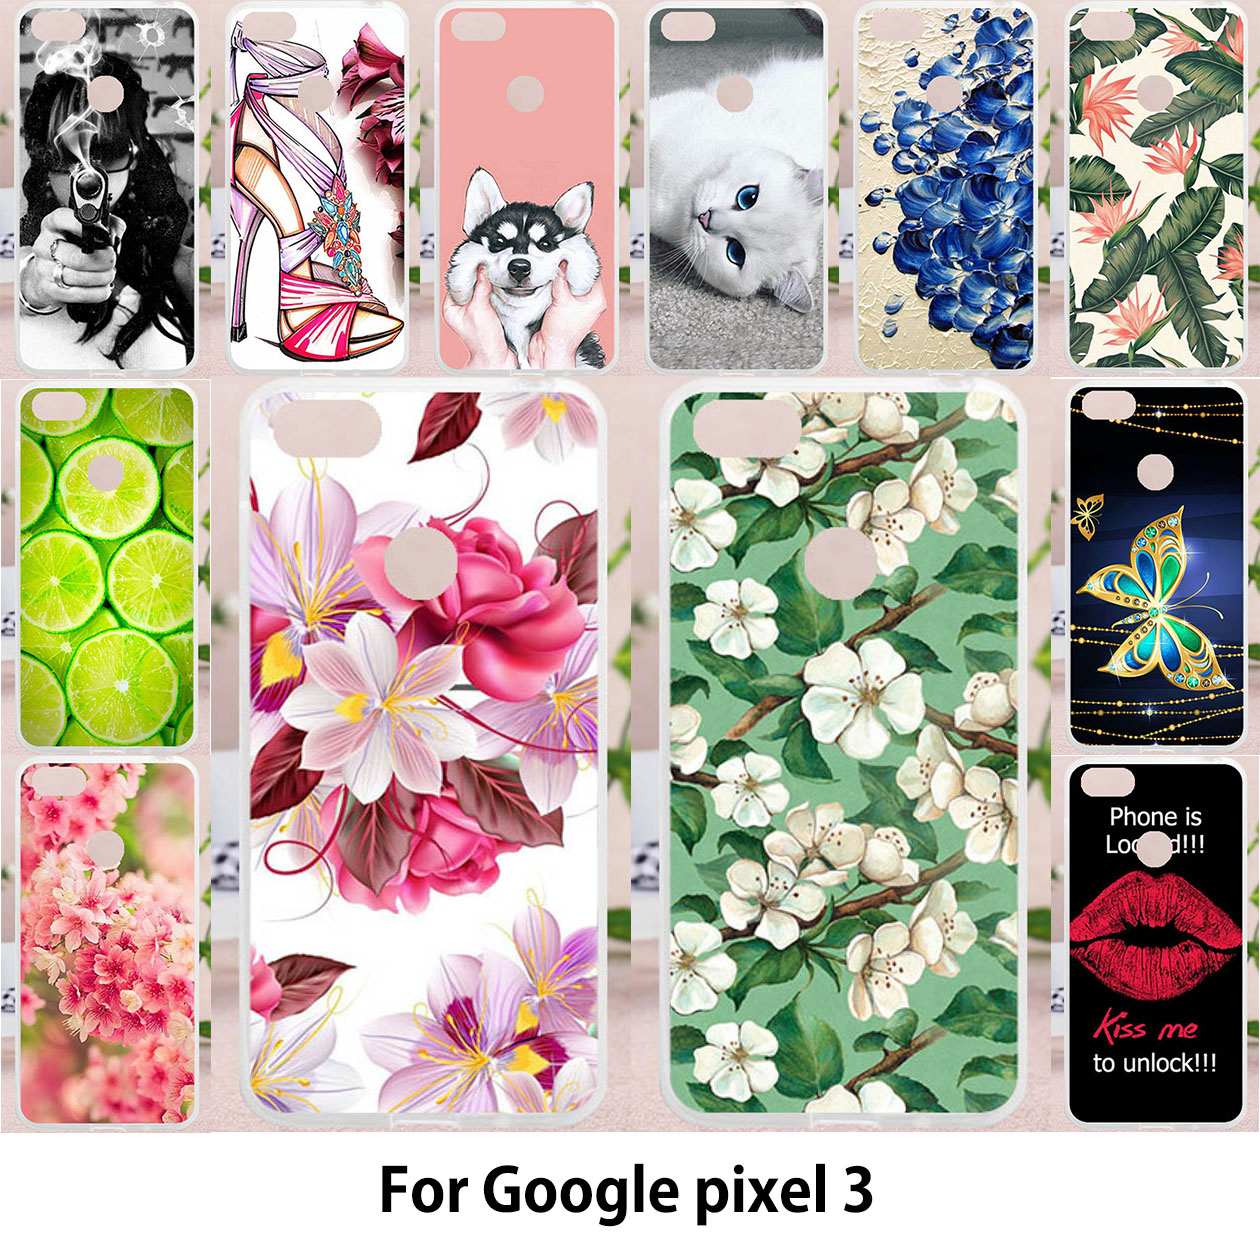 Cases For HTC Google Pixel 3 Pixel3 Covers 5.4 Inch Silicone Soft Painting Bags Flower Patterned Cover Housings Shell